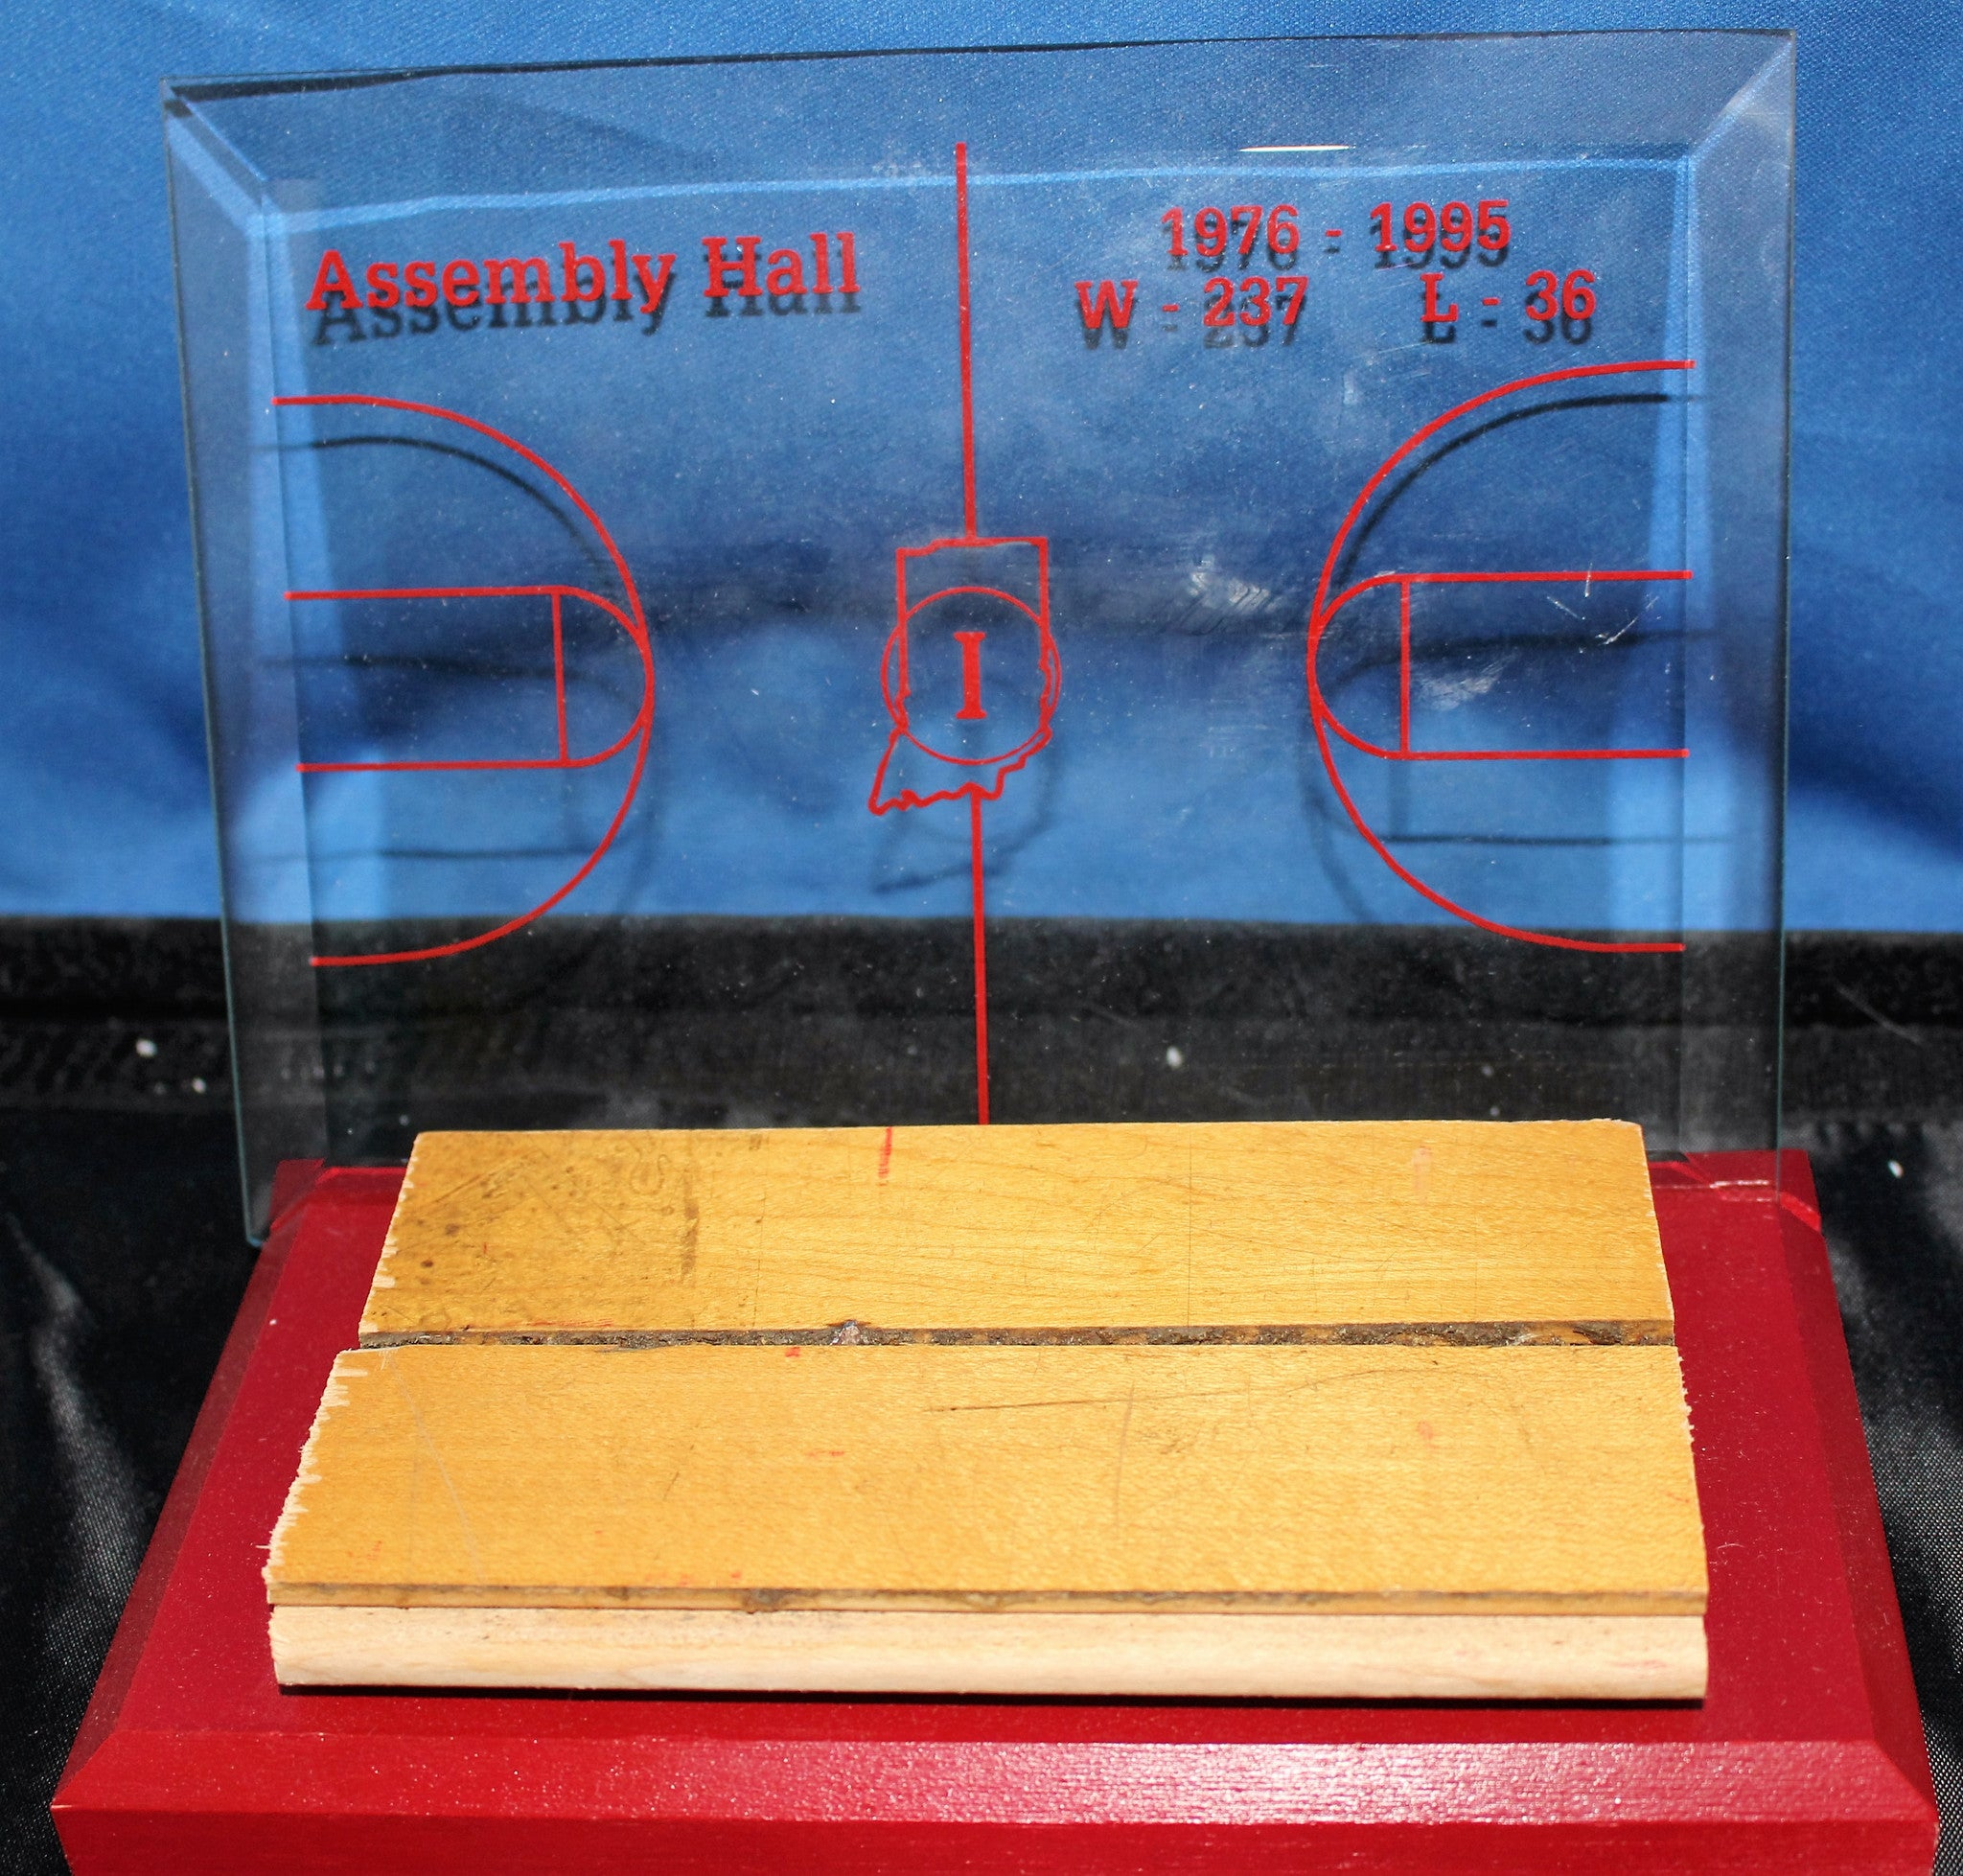 Indiana University Assembly Hall Floor Piece with Etched Glass Display - Vintage Indy Sports